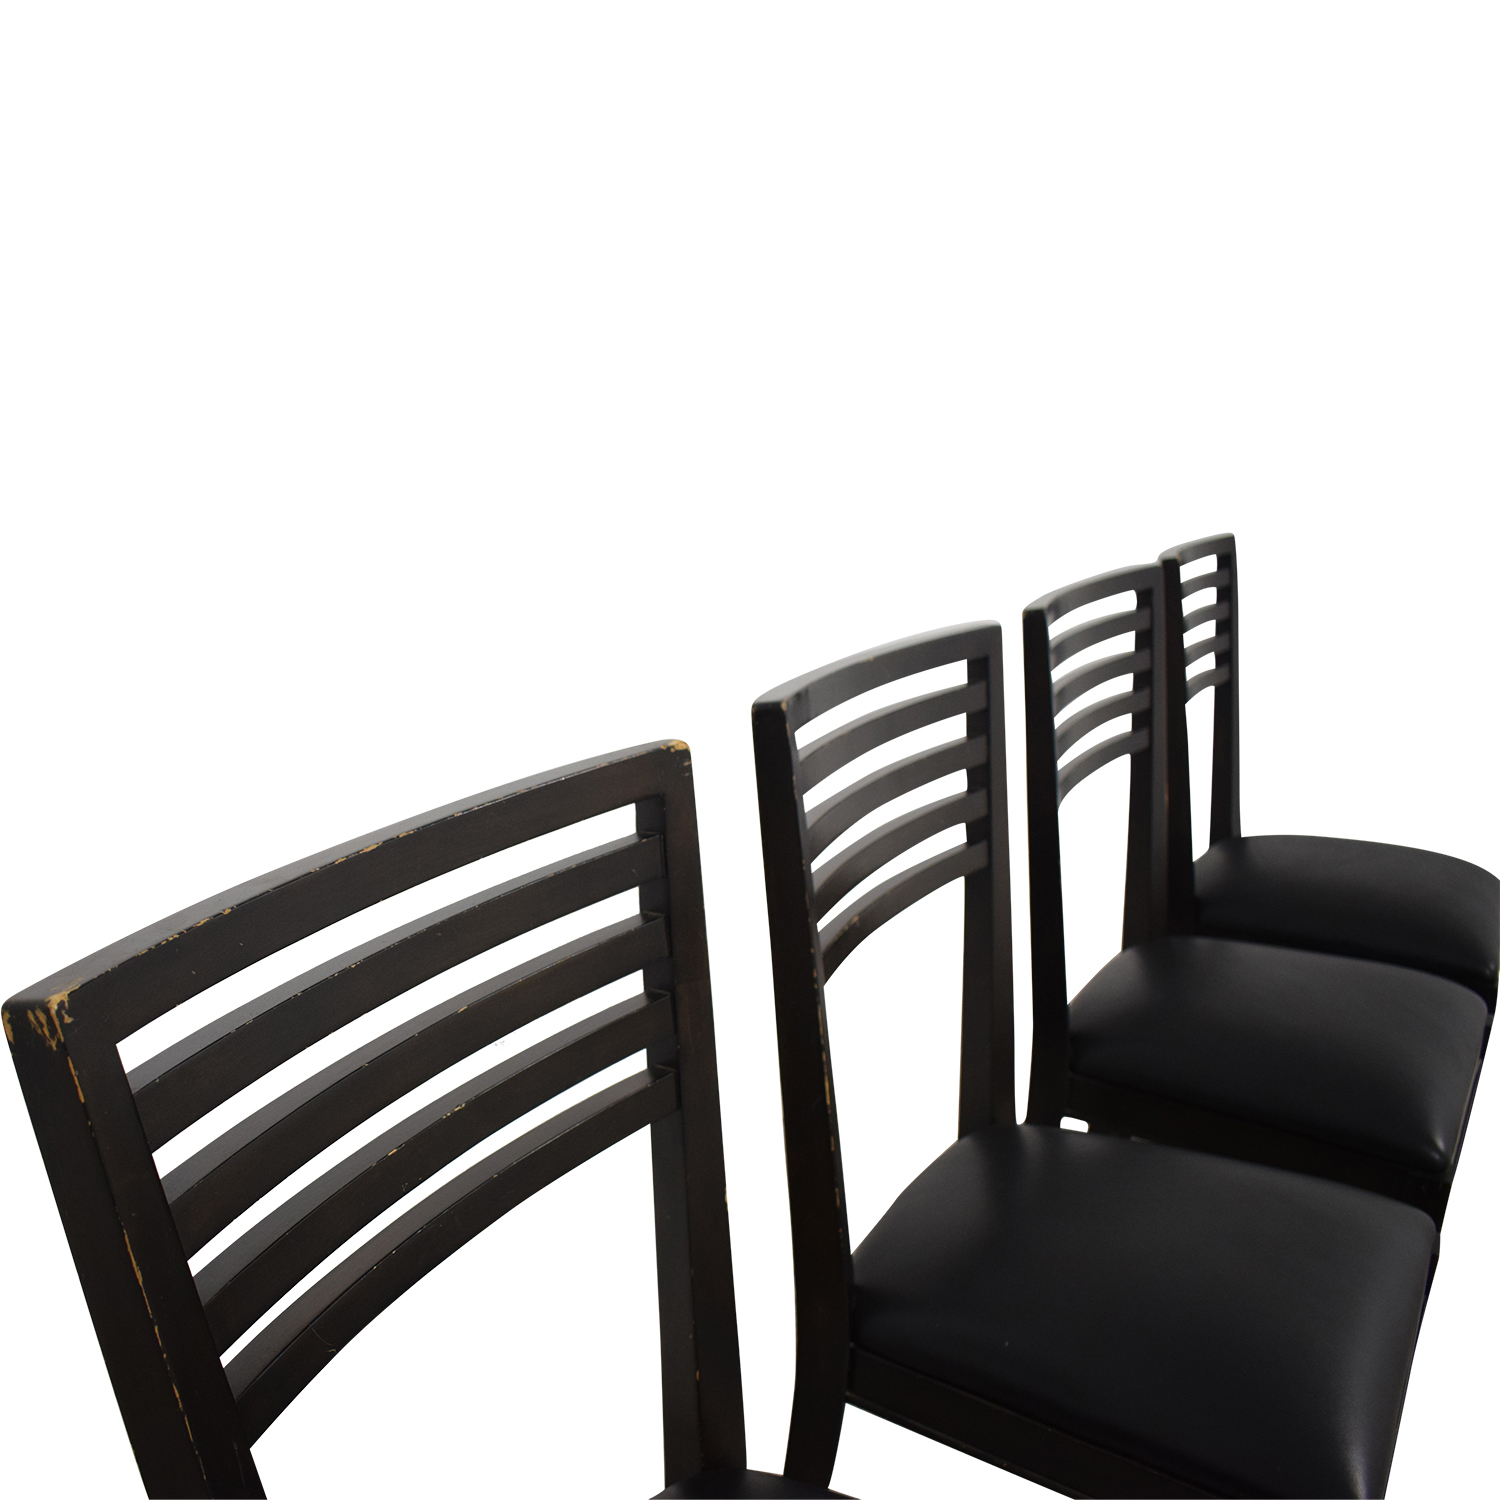 Crate & Barrel Crate & Barrel Black Dining Chairs price